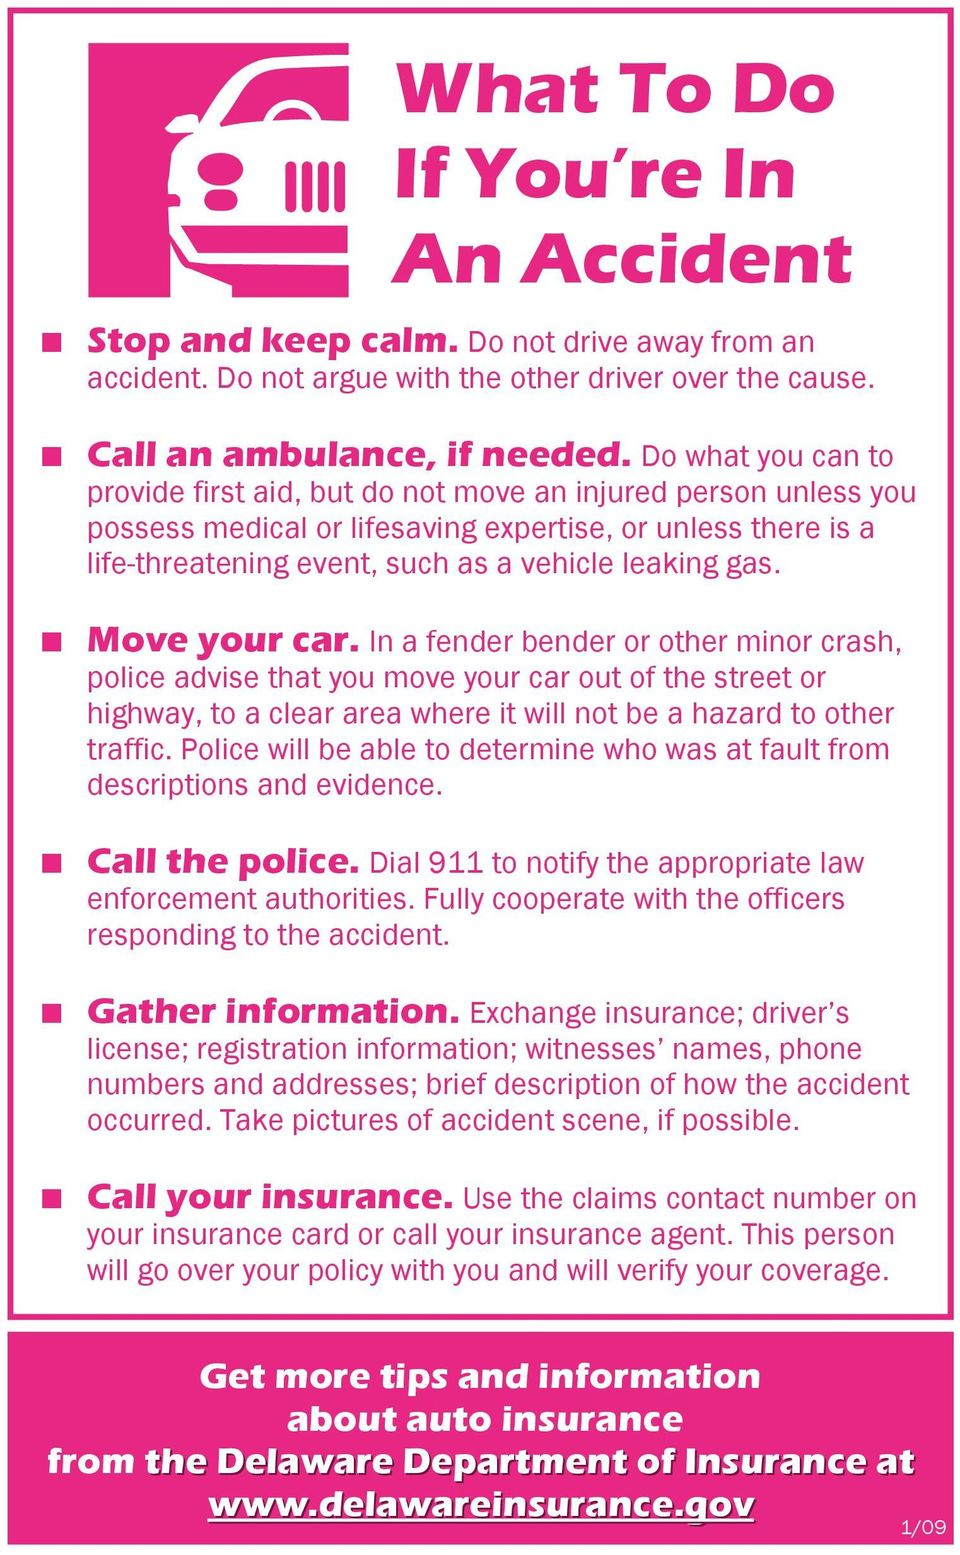 Move your car. In a fender bender or other minor crash, police advise that you move your car out of the street or highway, to a clear area where it will not be a hazard to other traffic.